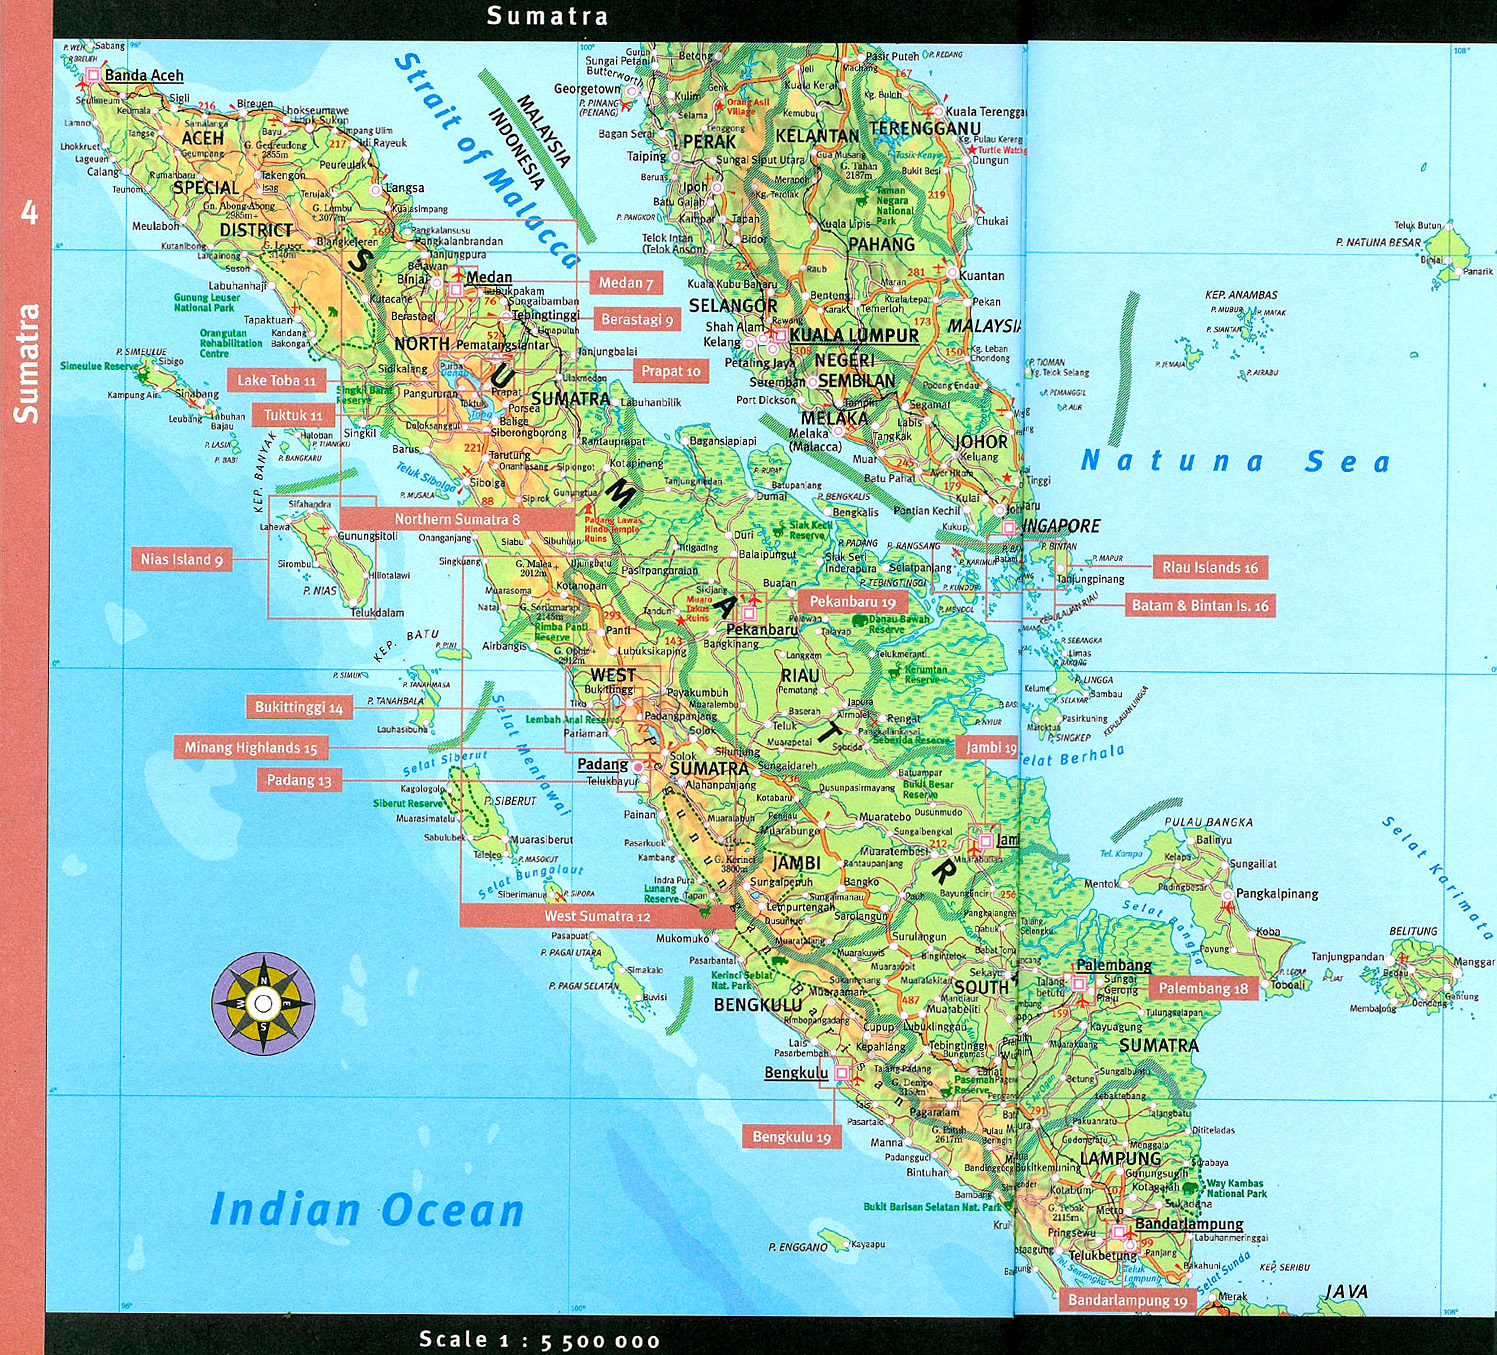 Download this Sumatra Overview Map... picture